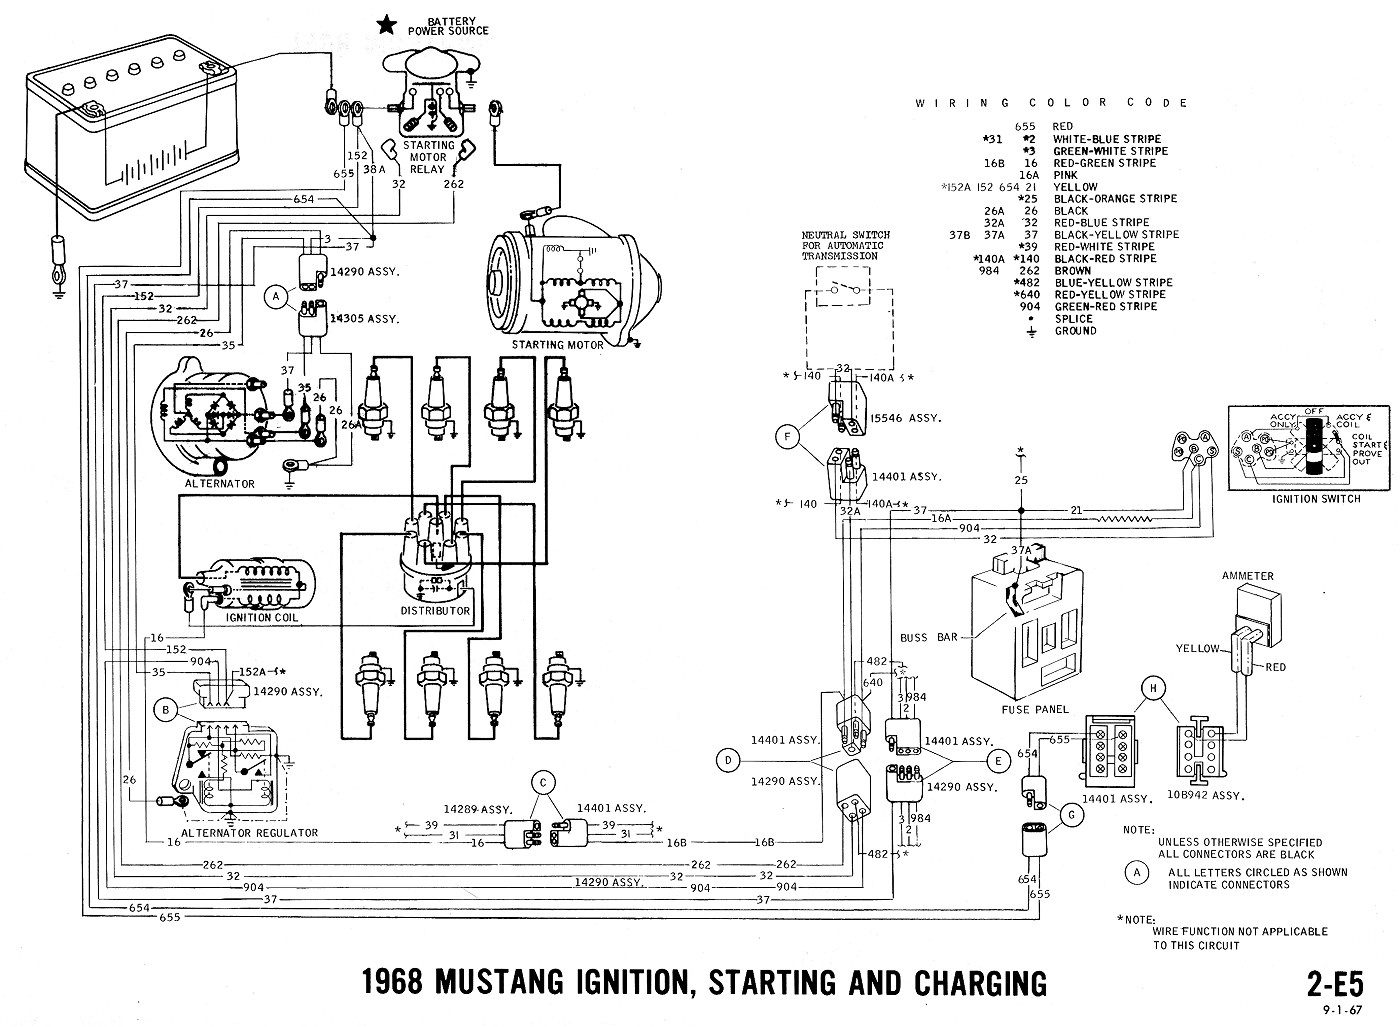 1968 mustang wiring diagrams evolving software rh peterfranza com ford mustang wiring diagram 1969 ford mustang wiring diagram 1969